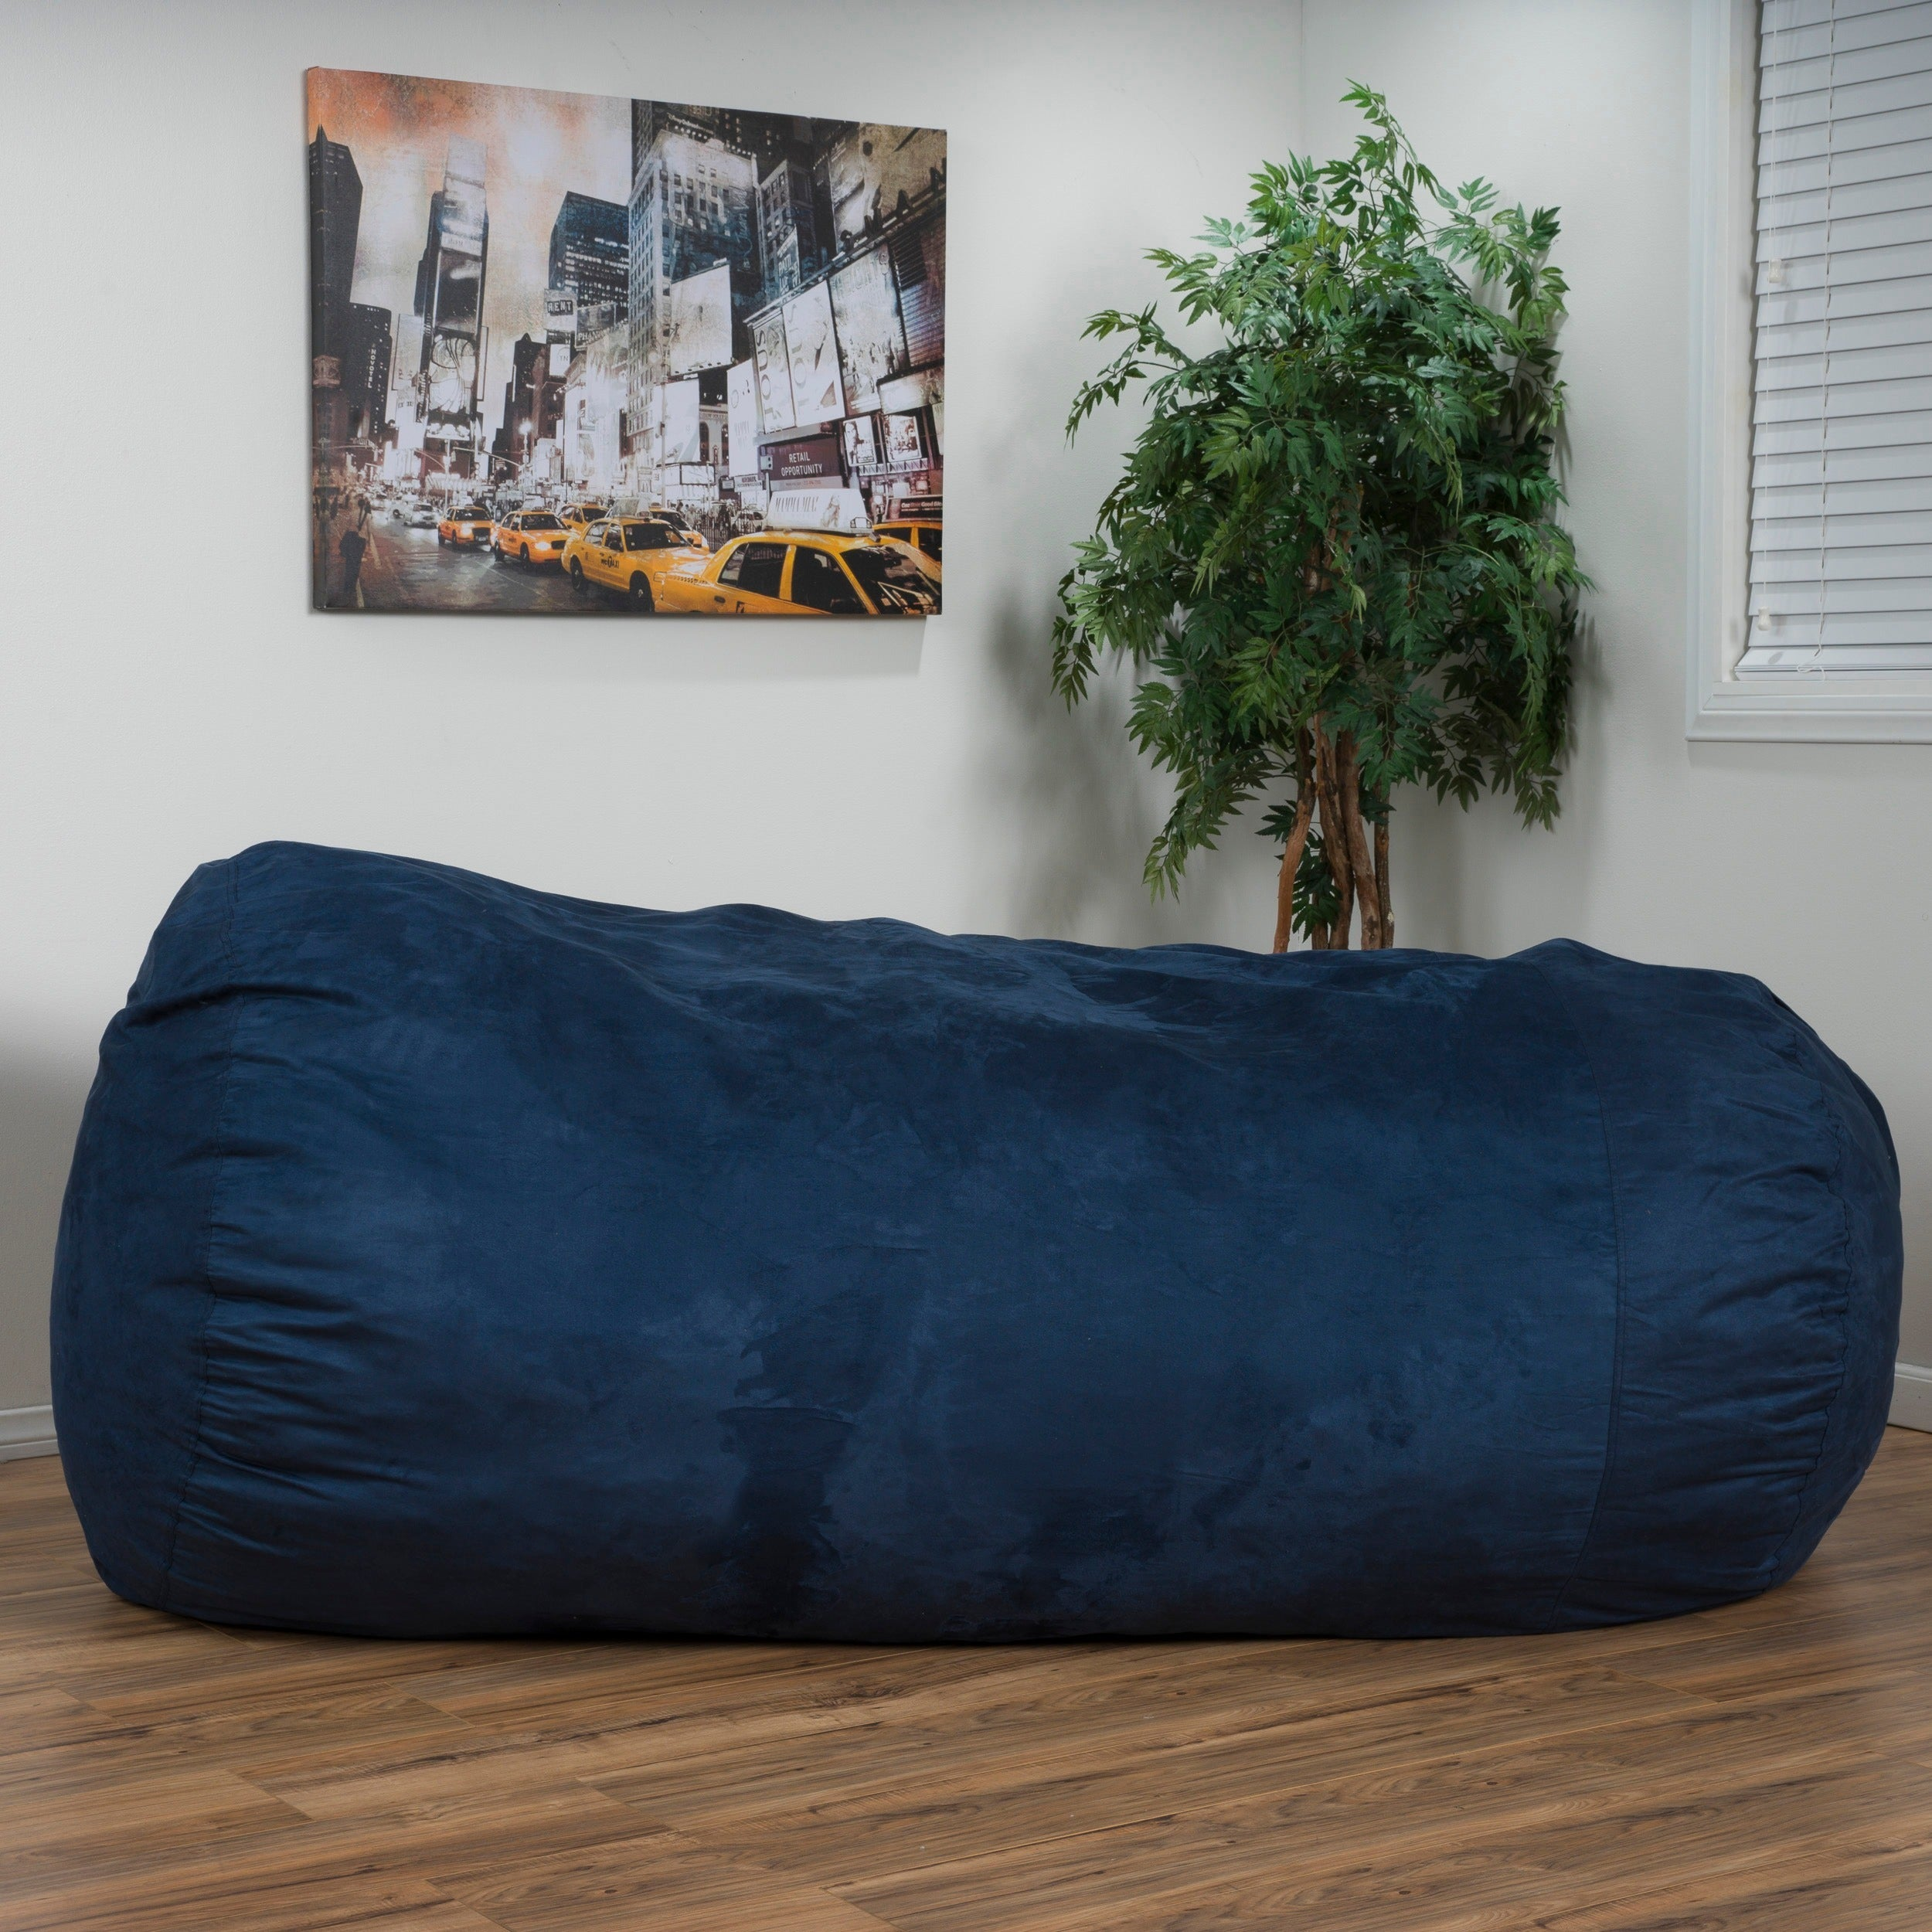 larson faux suede 8 foot lounge beanbag chair by christopher knight home   free shipping today   overstock     15084918 larson faux suede 8 foot lounge beanbag chair by christopher      rh   overstock